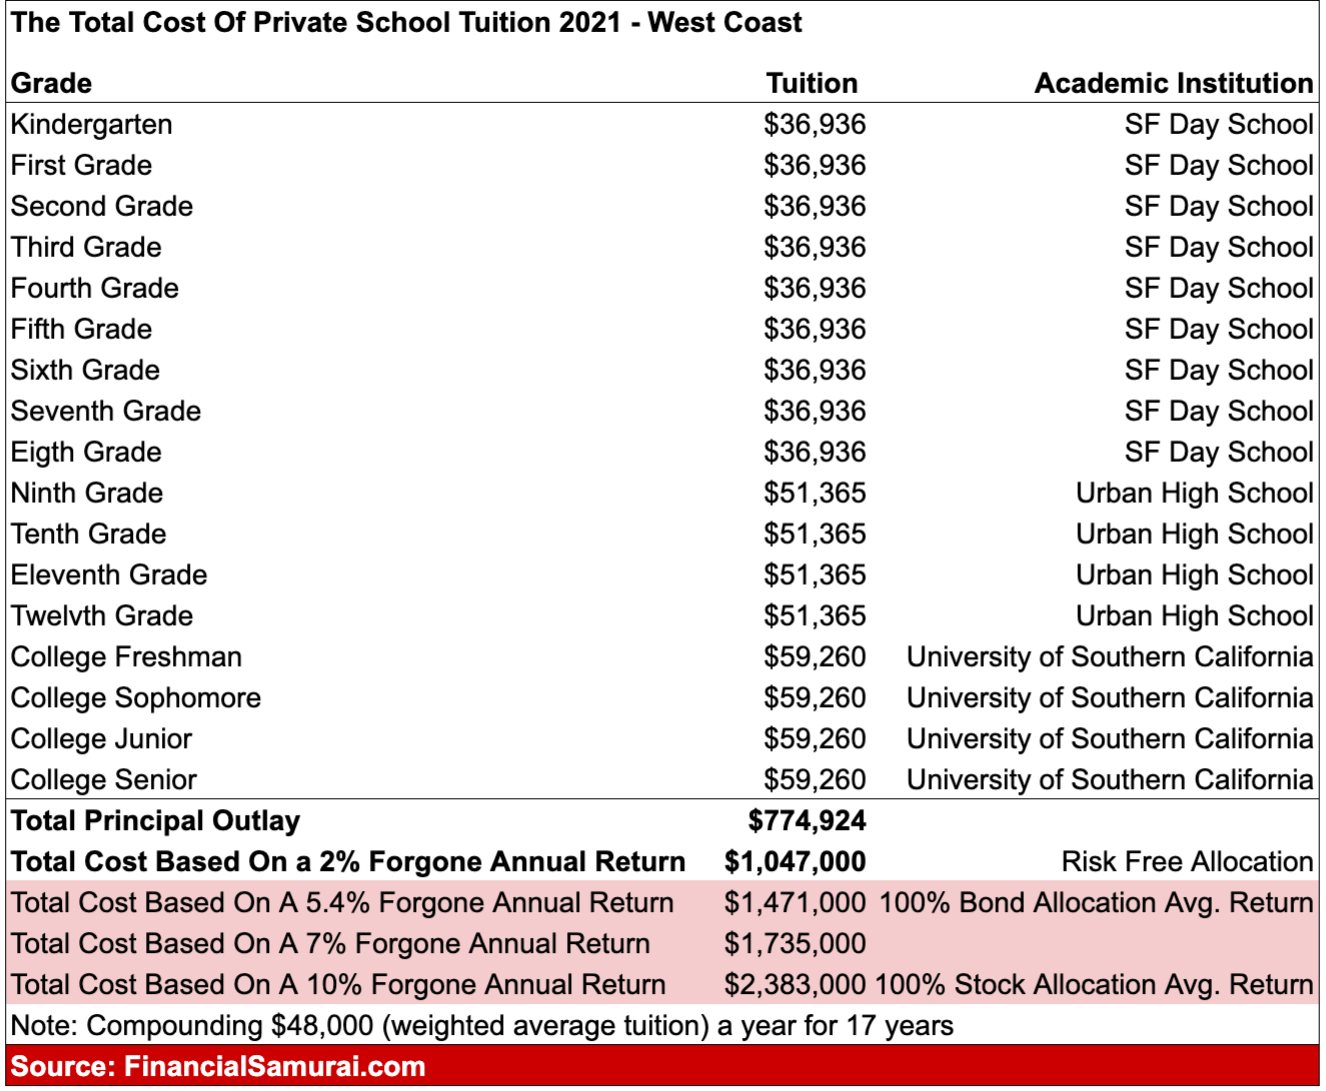 Private school costs for $400K income